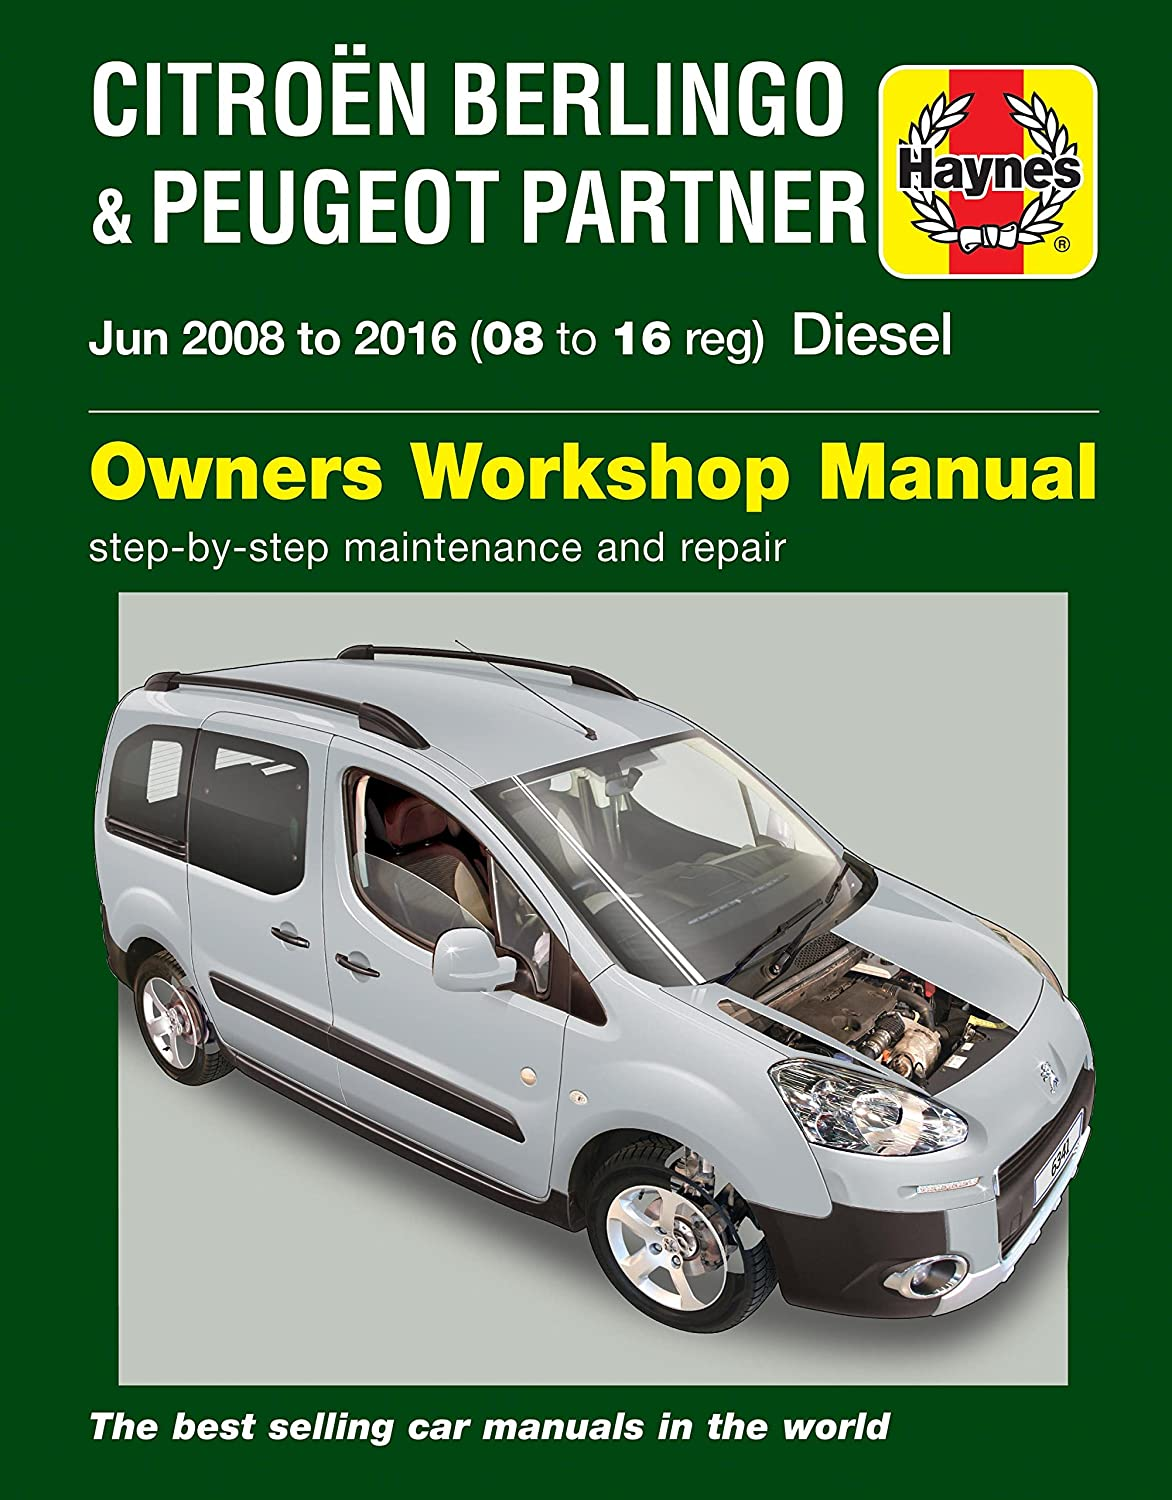 citroen berlingo peugeot partner diesel owners workshop manual rh amazon co uk Haynes Repair Manual Online View Haynes Repair Manuals Online